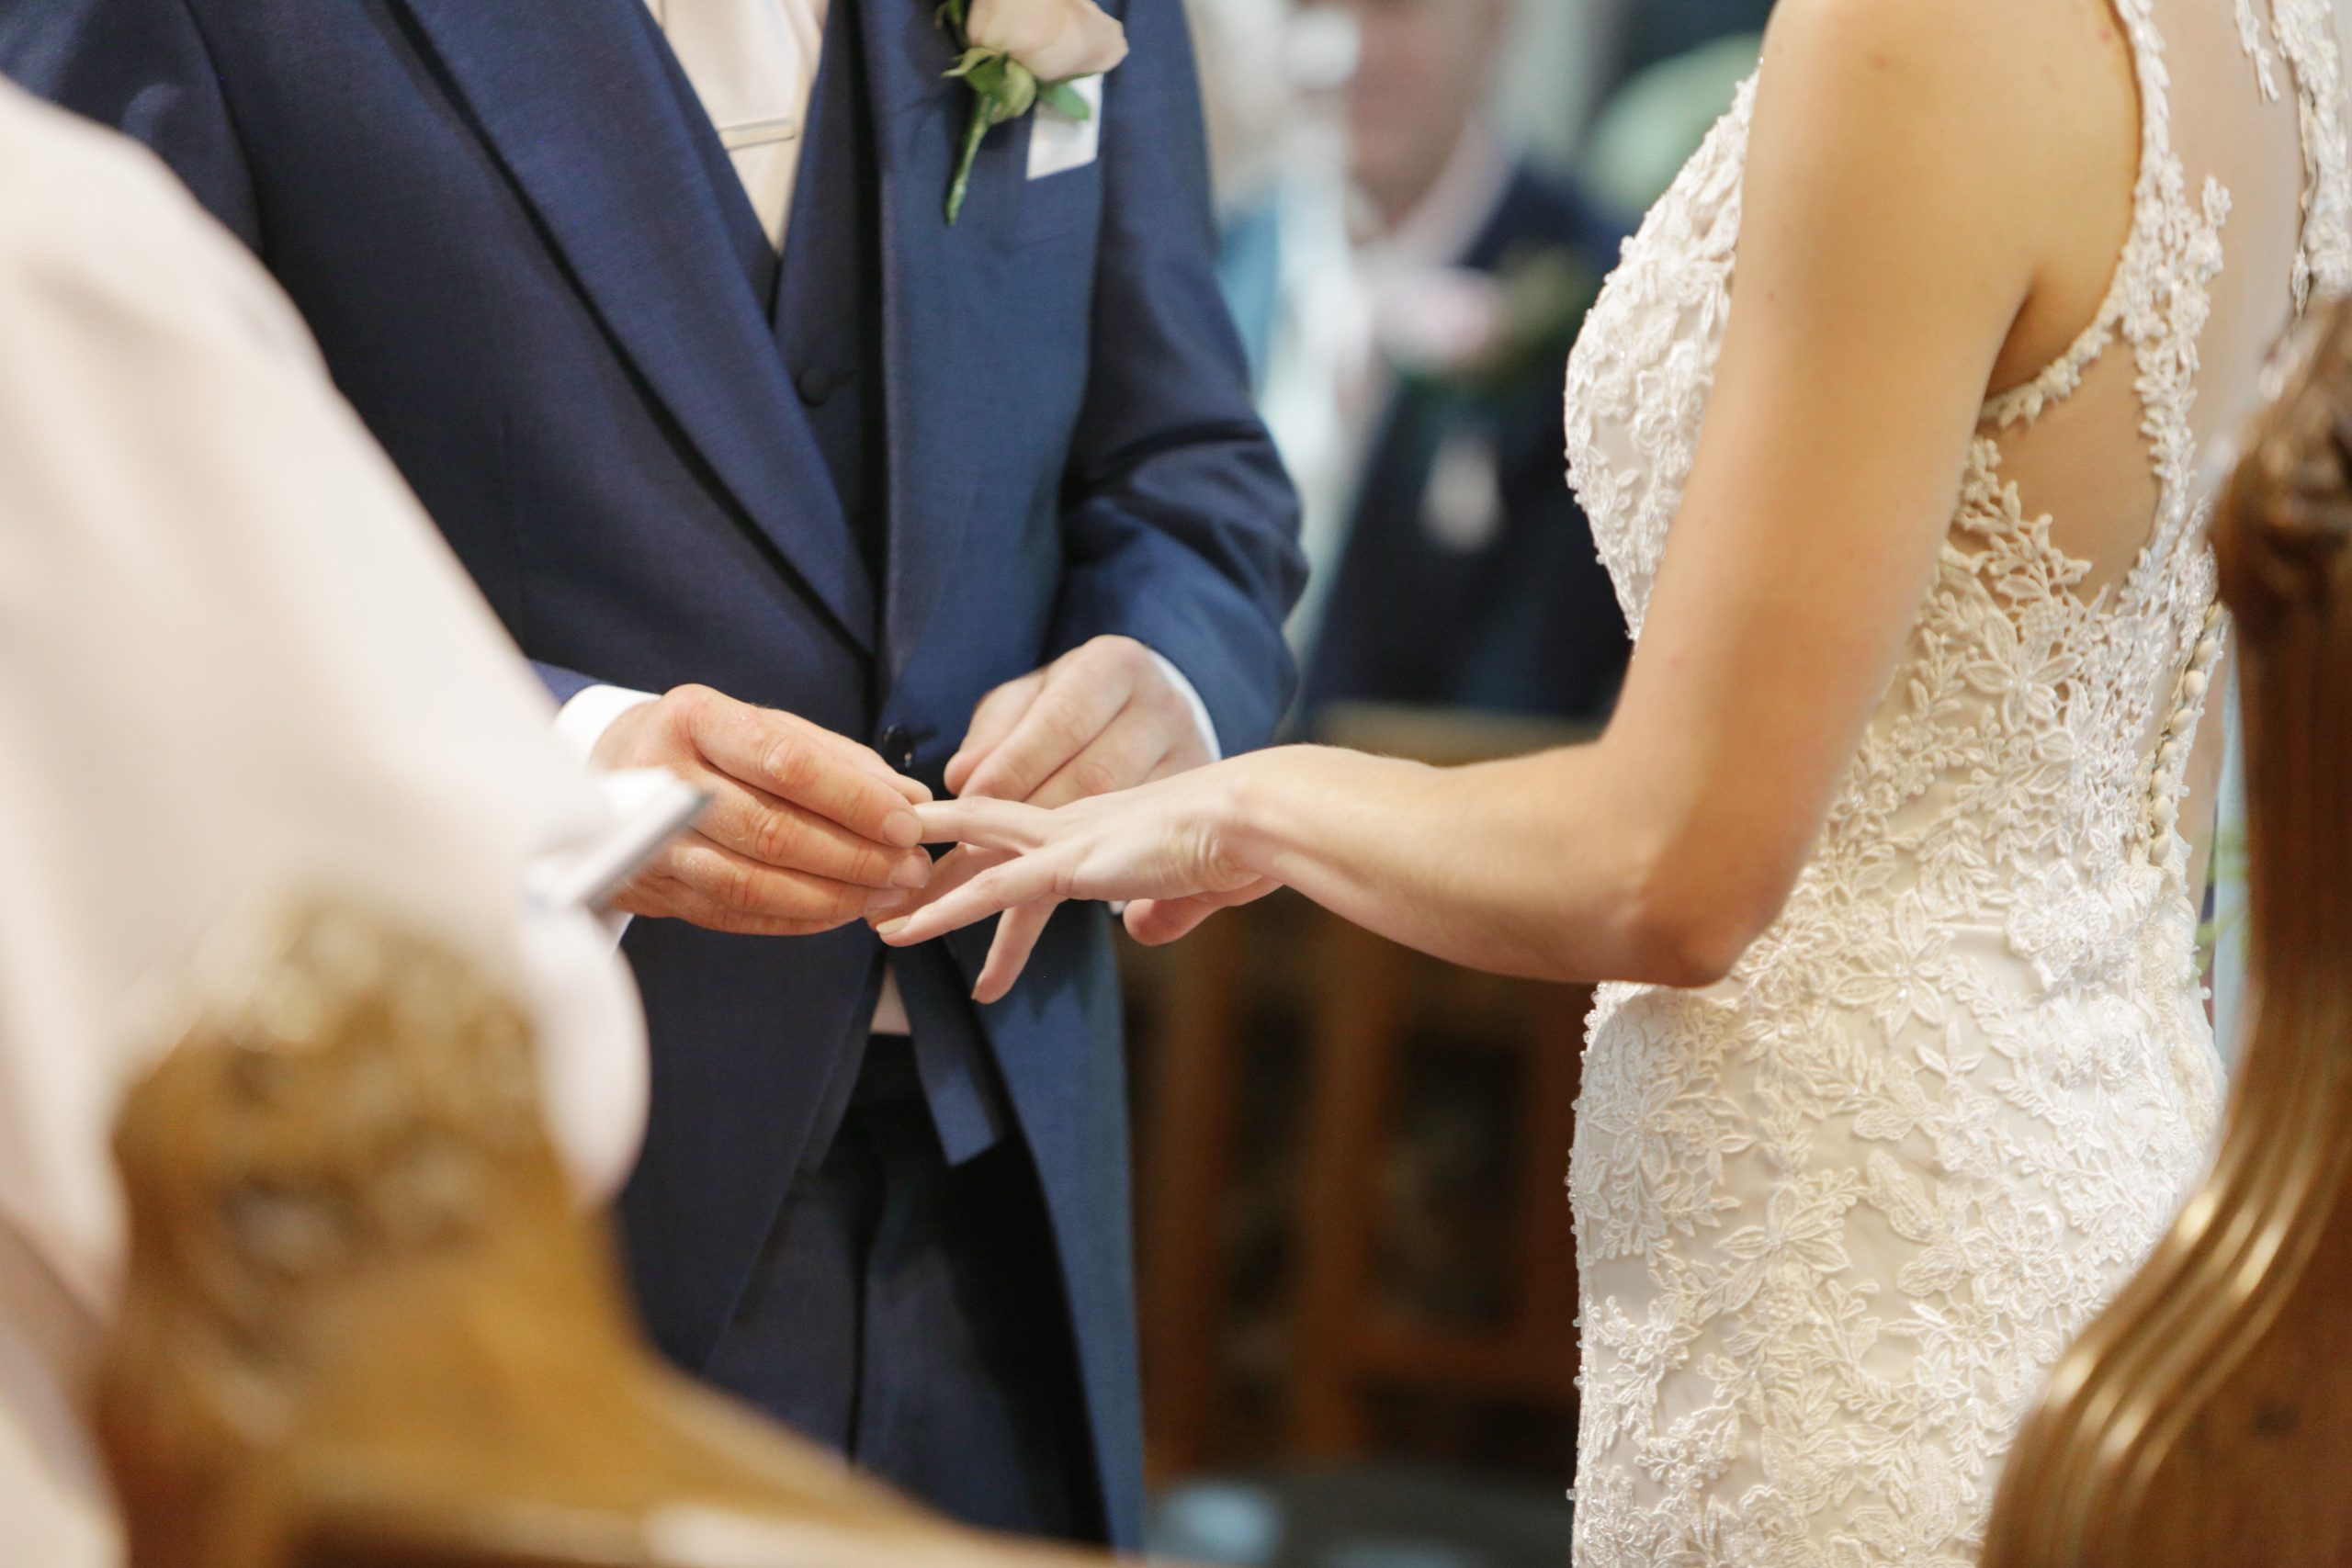 When will weddings resume and what will a wedding post-Covid look like?    Woman & Home